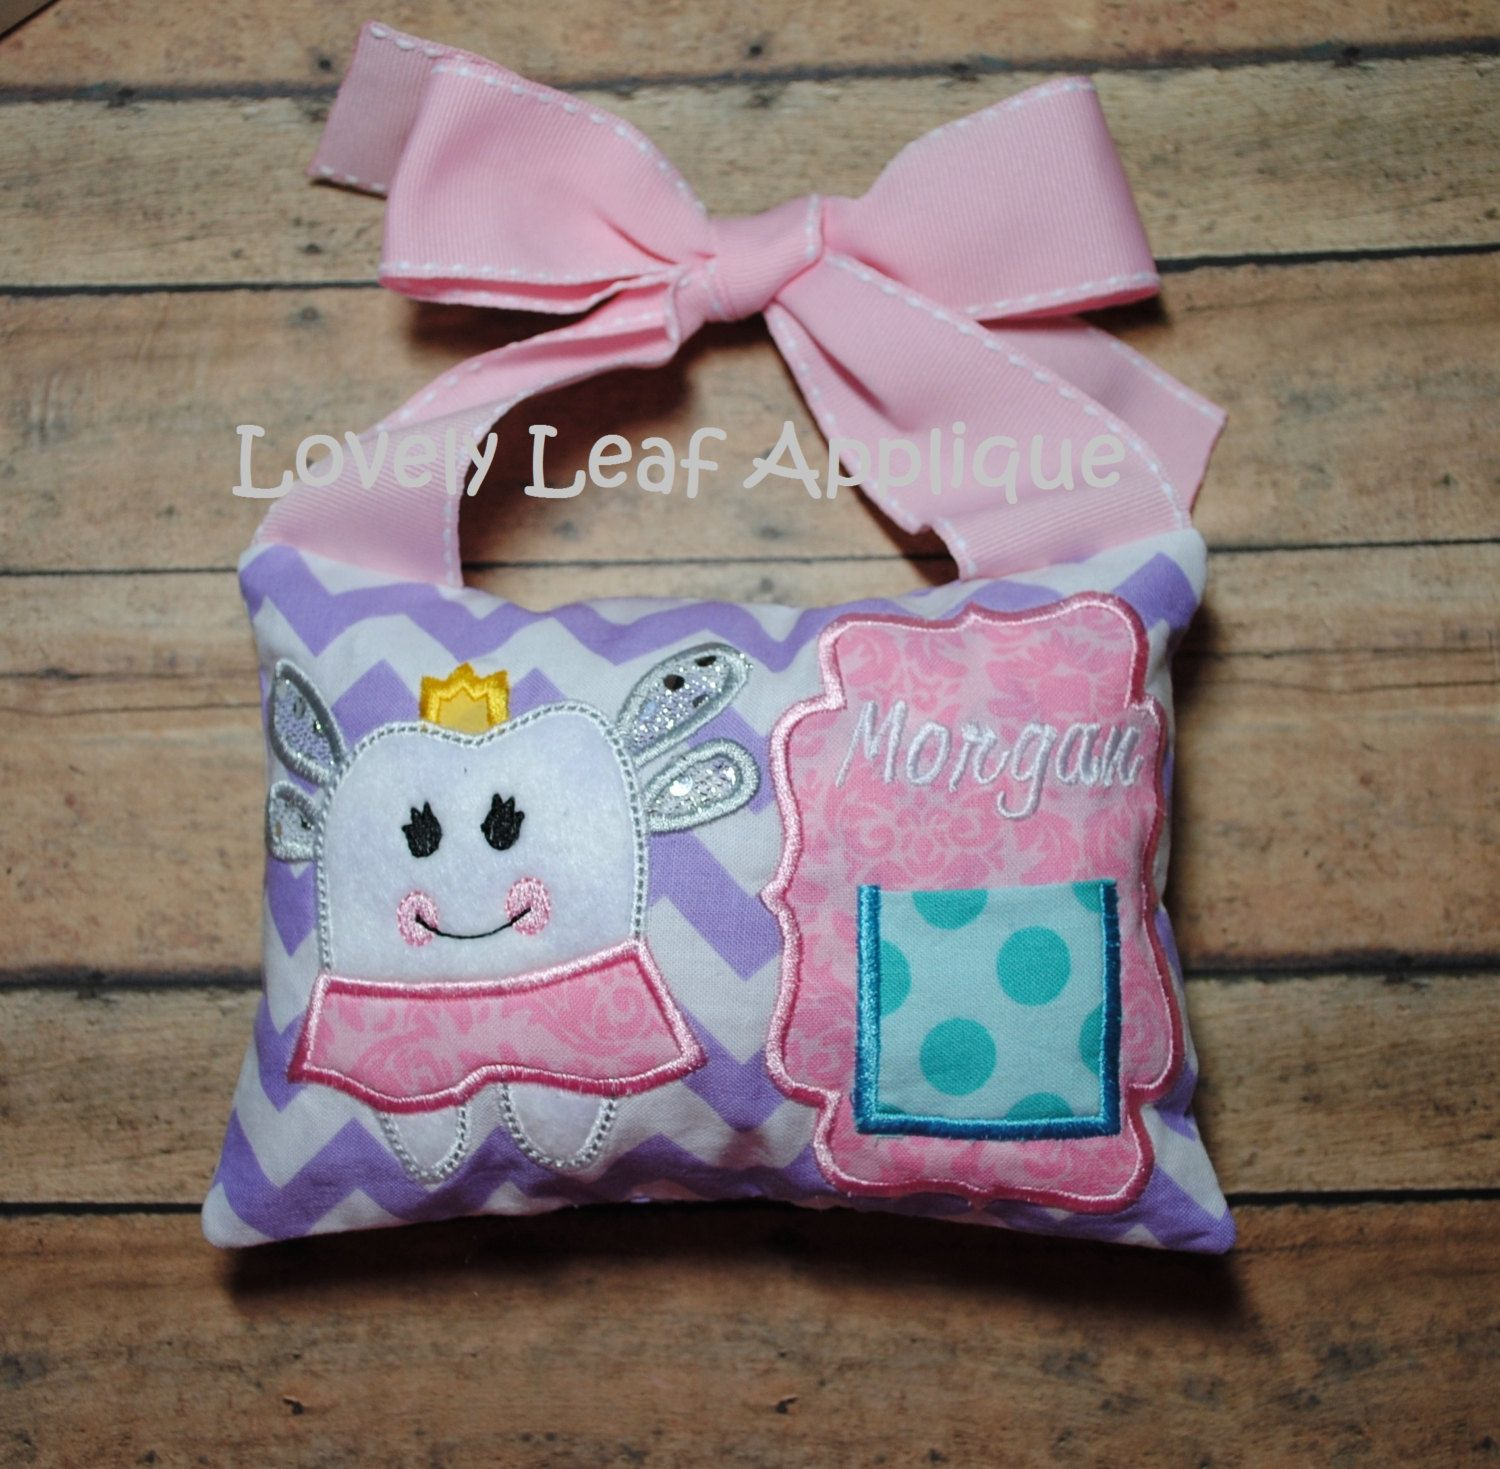 Tooth Fairy Pillow Applique Design: Tooth Fairy Pillow in the hoop embroidery design! Love this  Want    ,